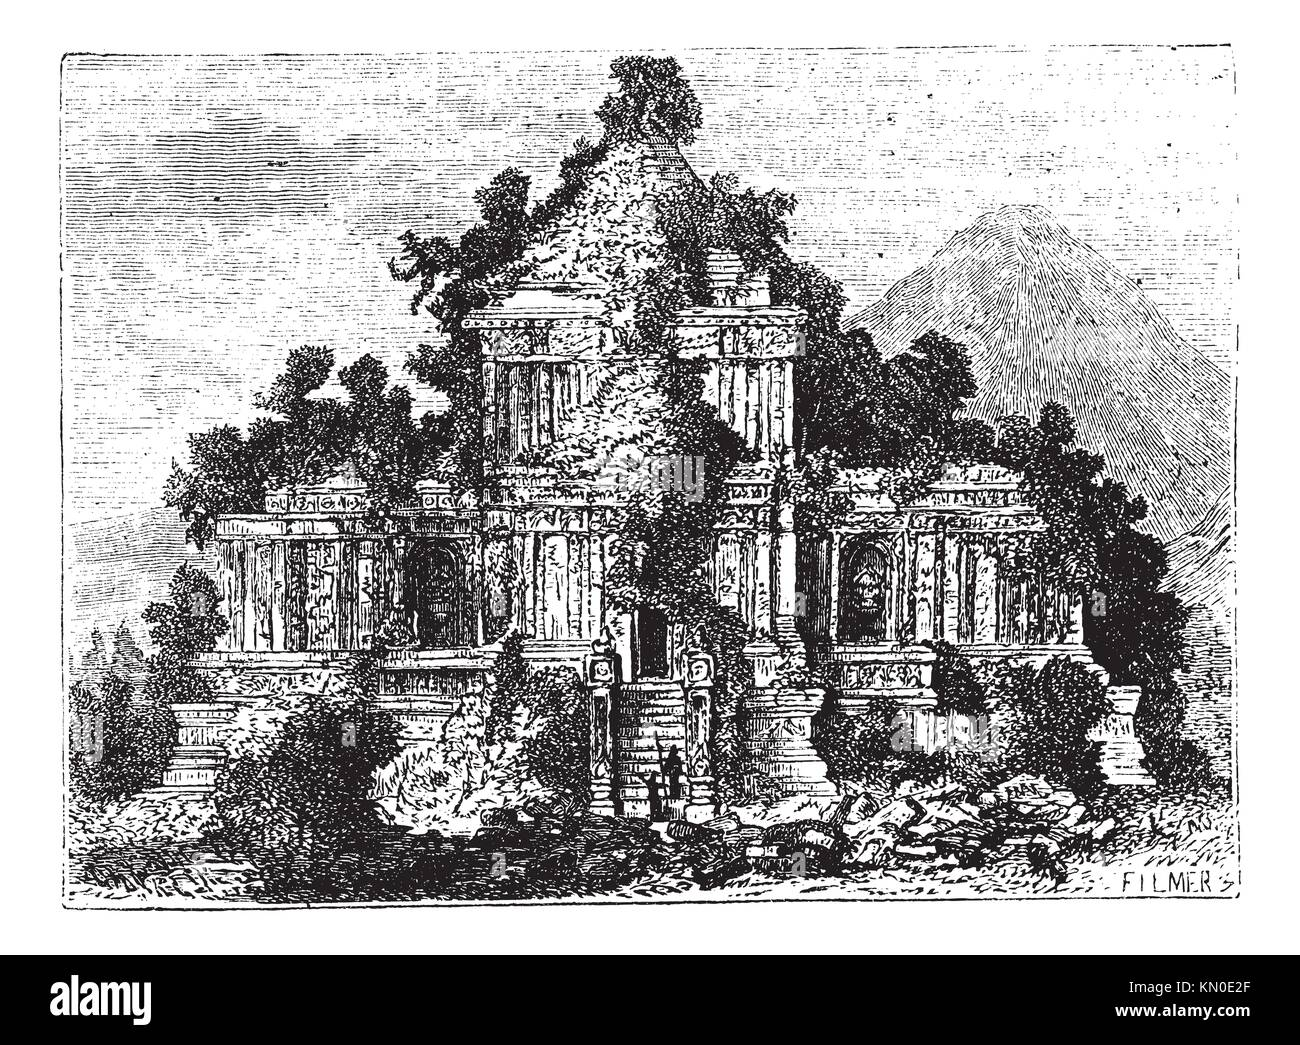 The large Temple at Brambanan, Indonesia, old engraved illustration of the large Temple at Brambanan, Indonesia, - Stock Image